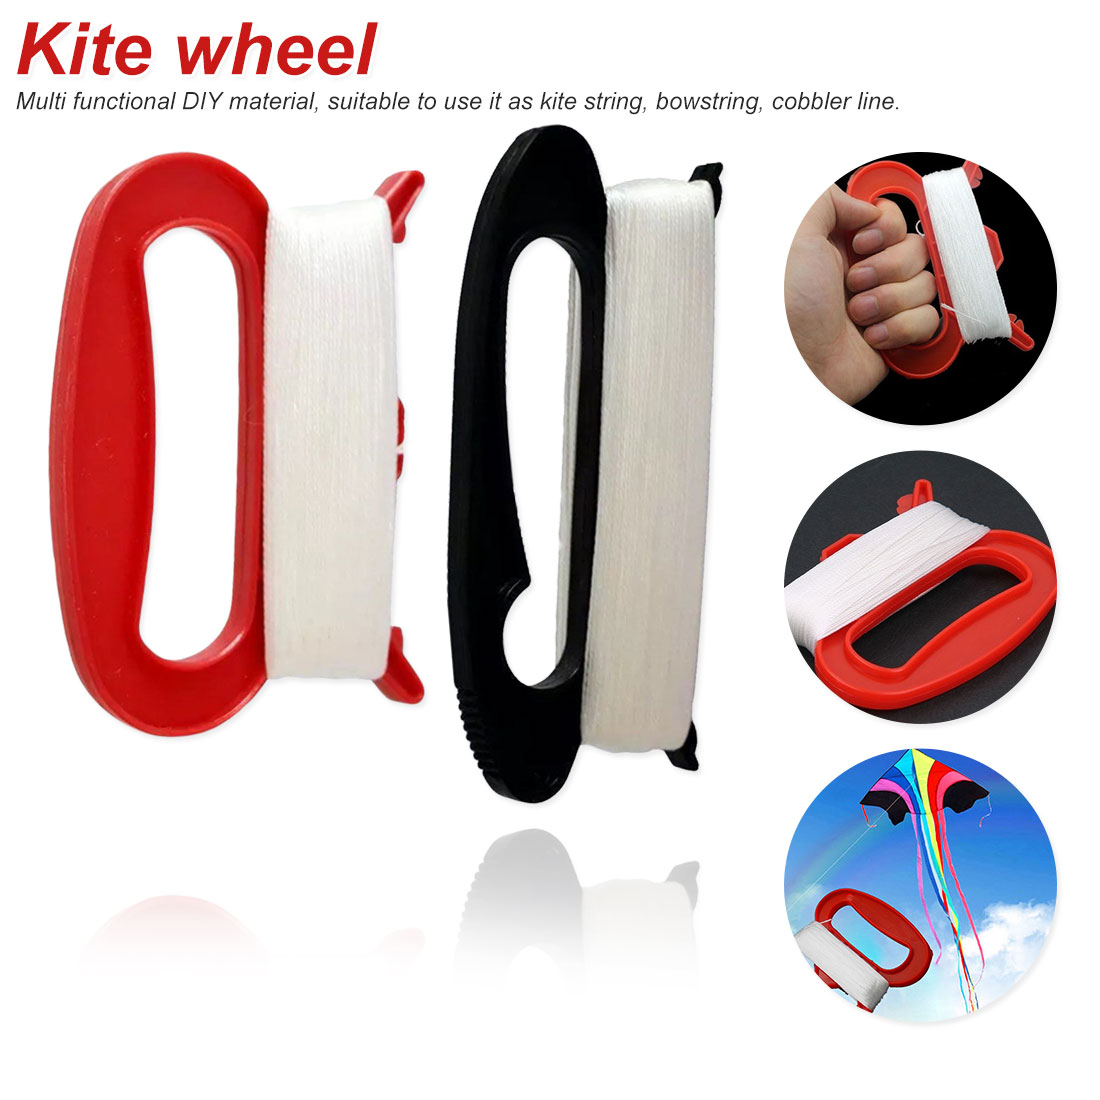 New kite Line String 30 to 100M Kid Outdoor Flying Kite Letter D Shape Handle Line String Family Outdoor Sports Tools image